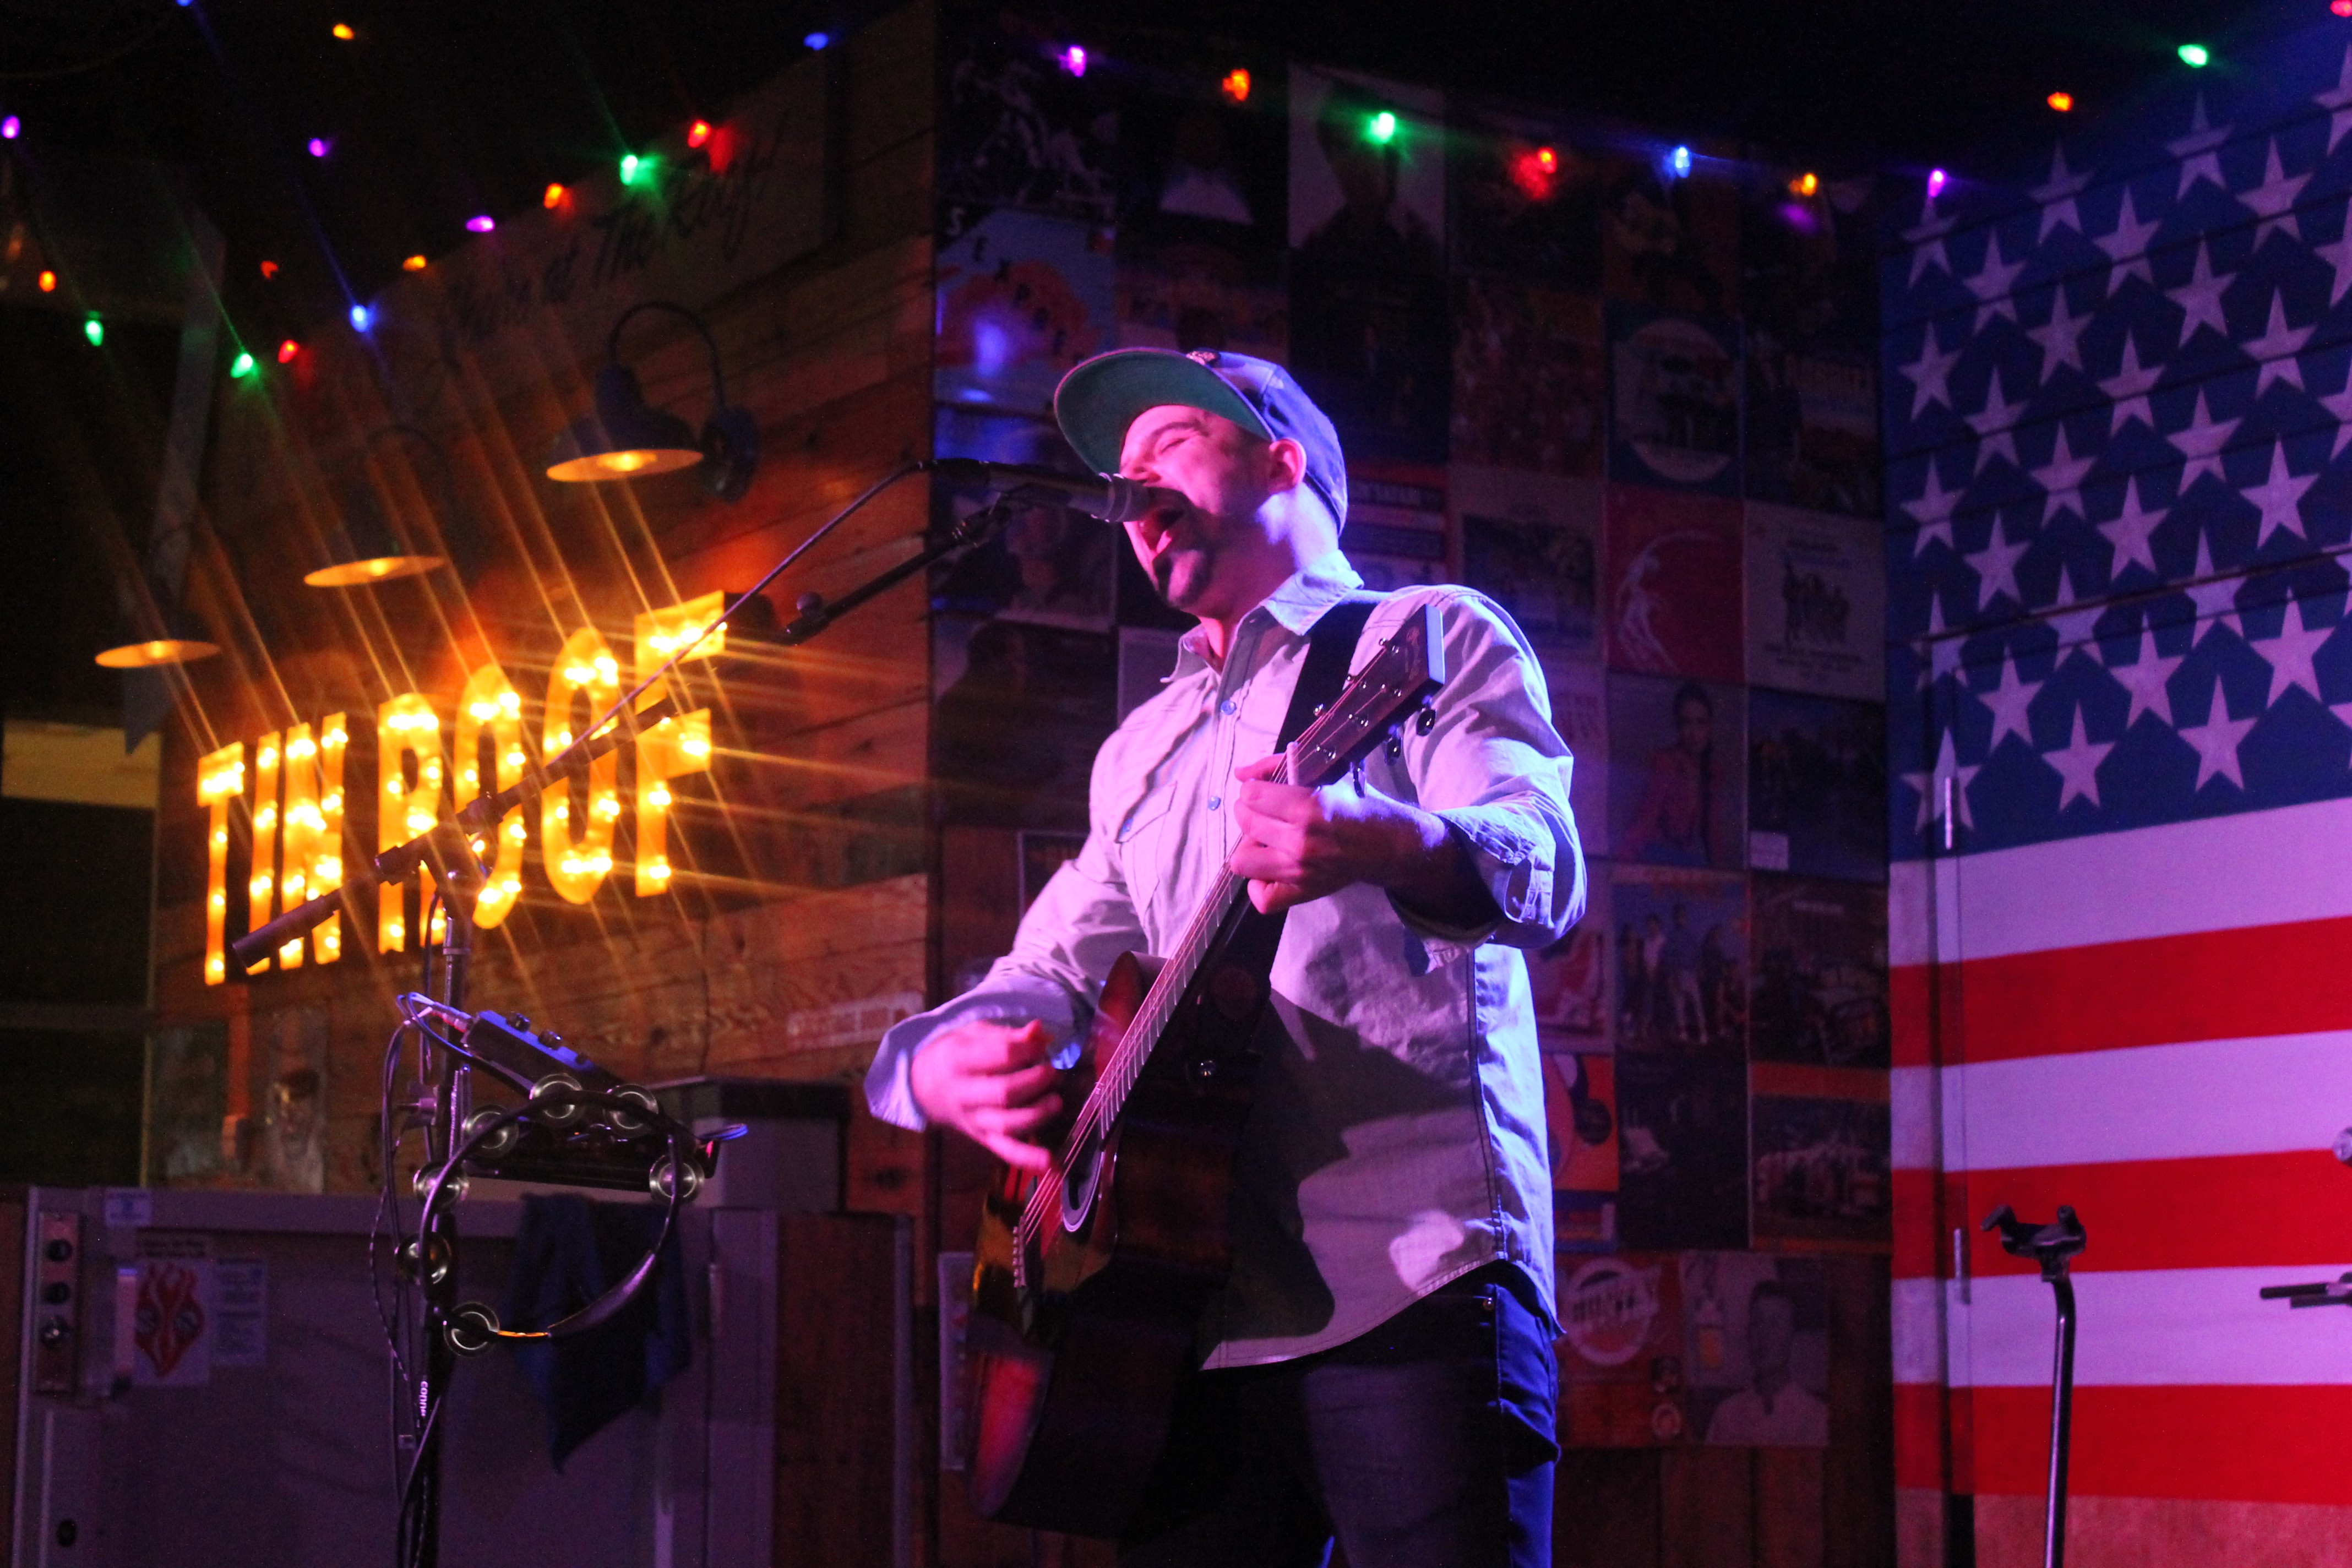 New Live Music Joint Tin Roof Looks To Local Musicians